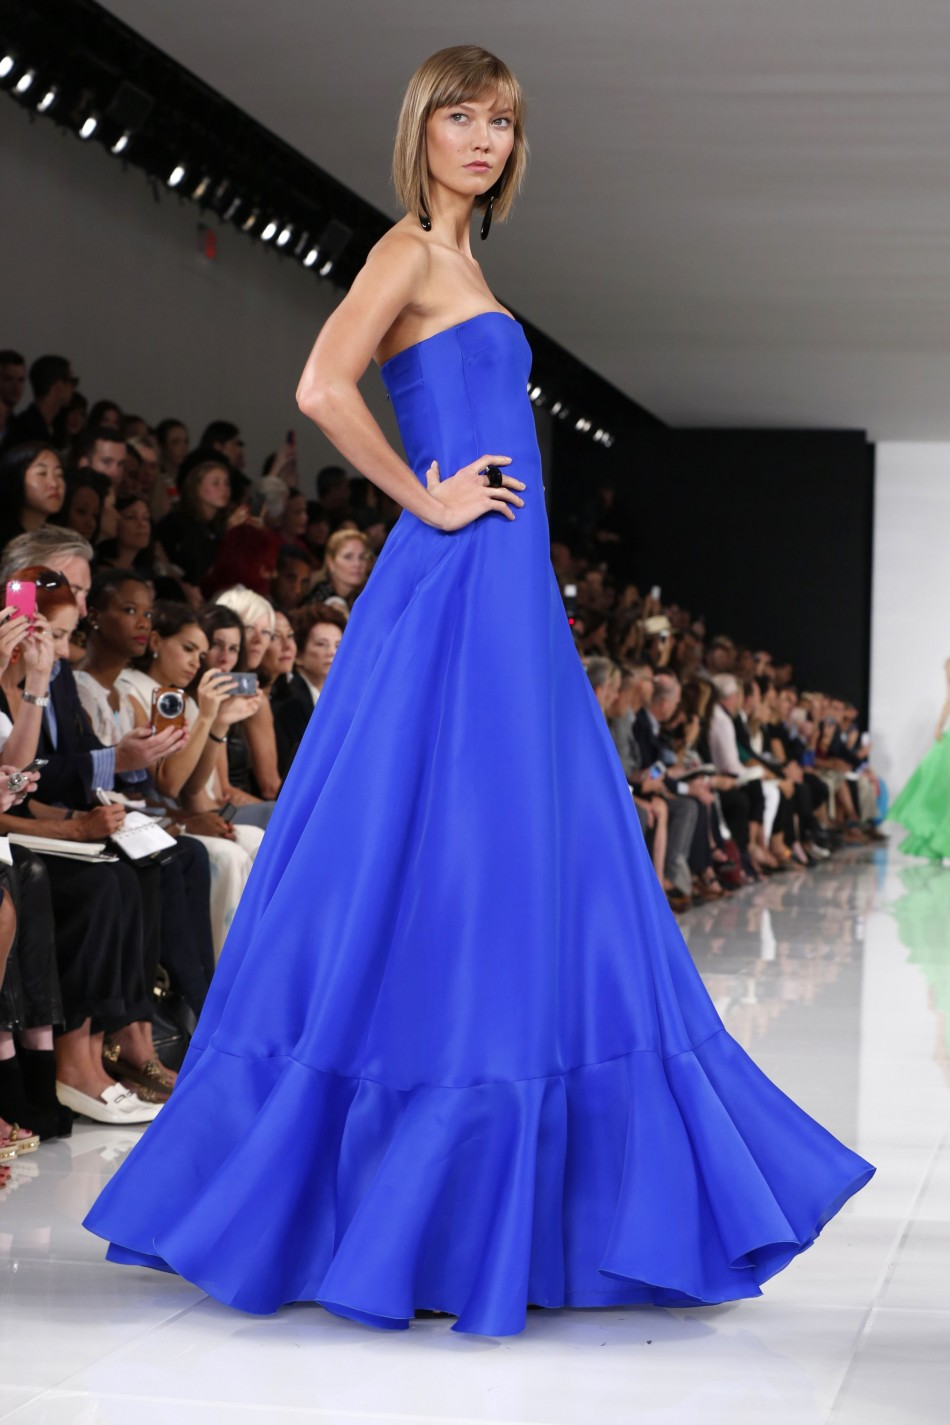 Ralph Lauren's Spring/Summer 2014 collection featured girly gowns. (REUTERS/Lucas Jackson)